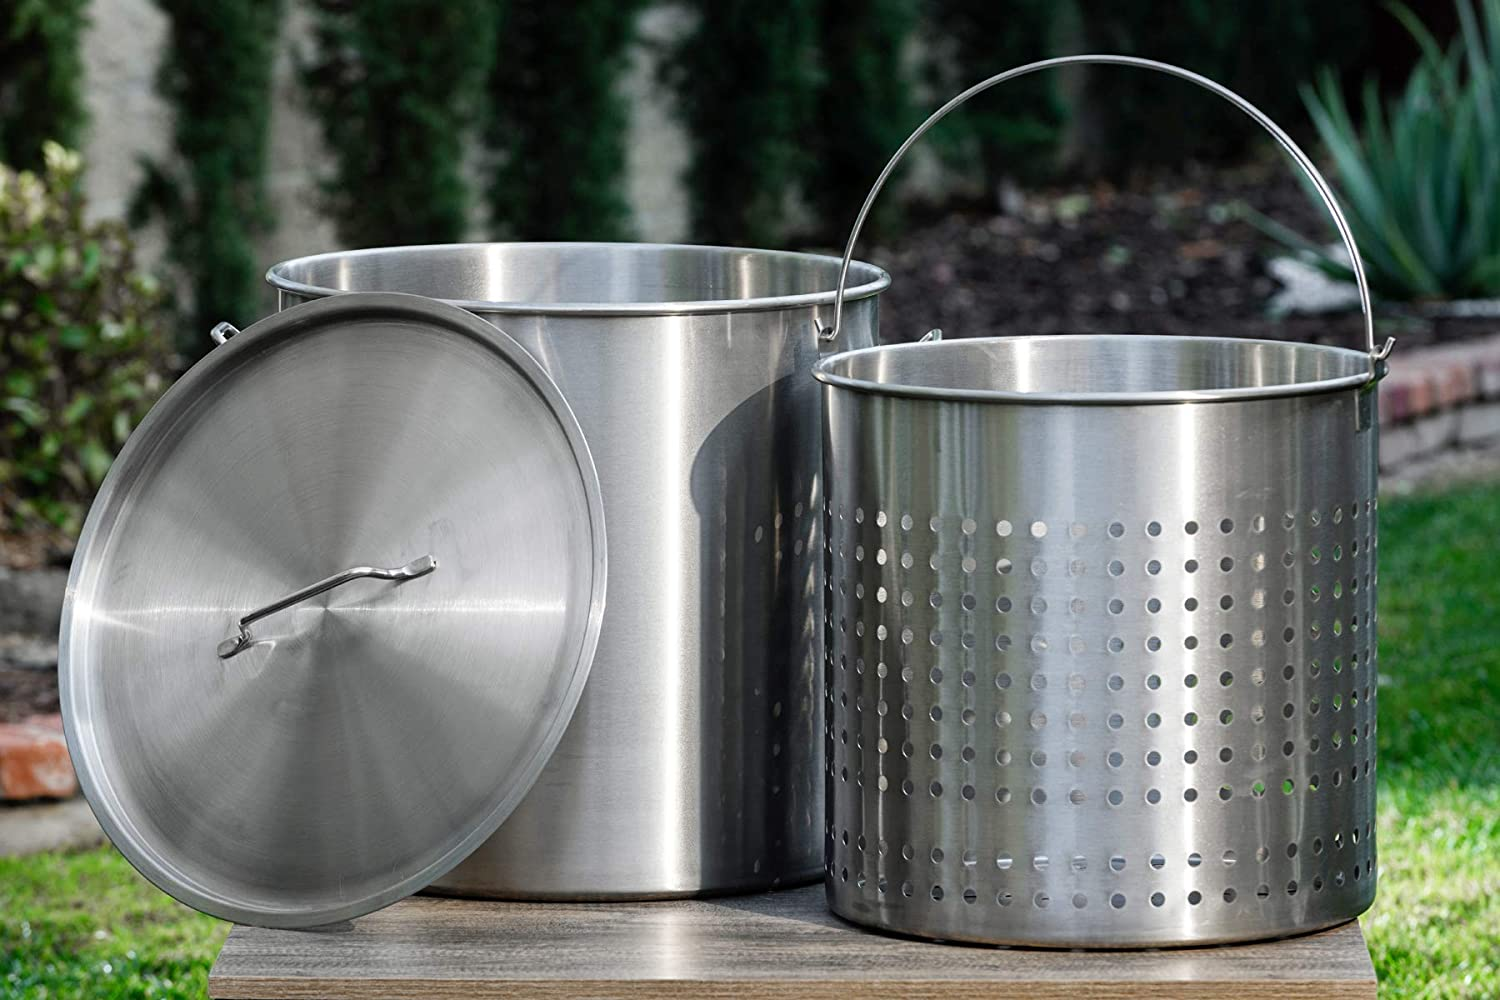 Barton Commercial Stainless Steel Stock Pot Low price w Some reservation Lid Steamer Basket